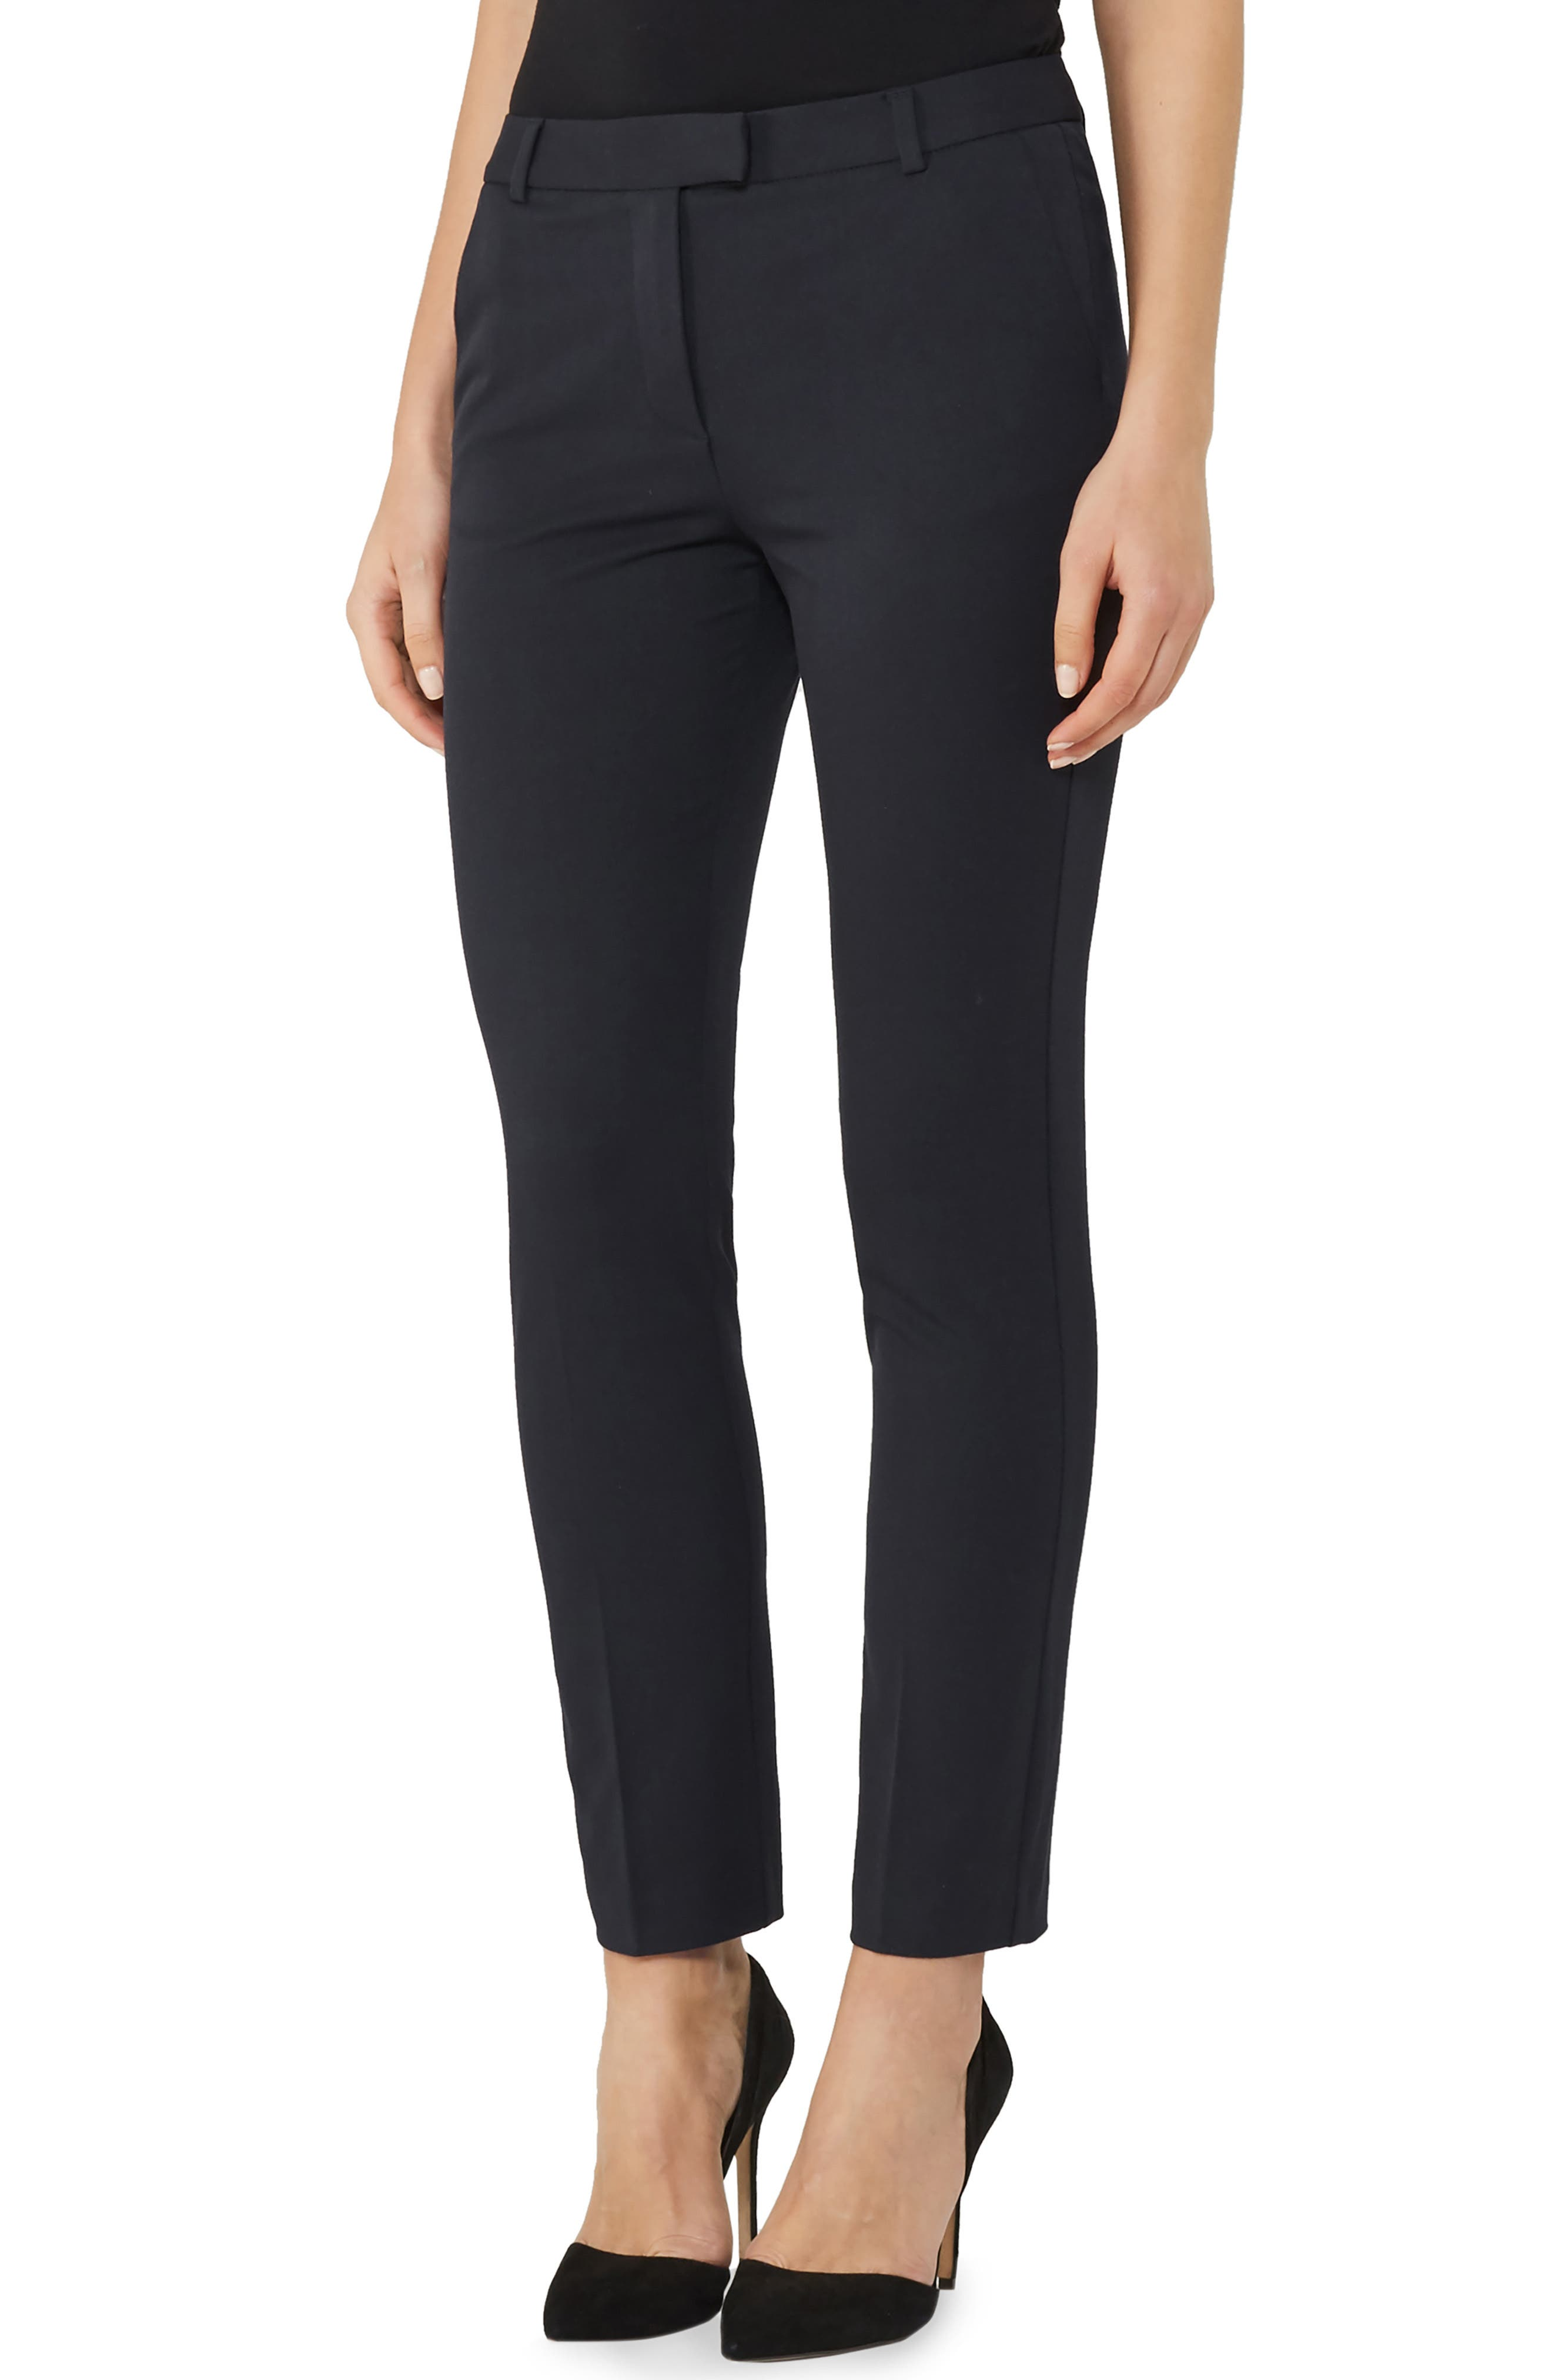 REISS Joanne Ankle Pants, Main, color, NAVY